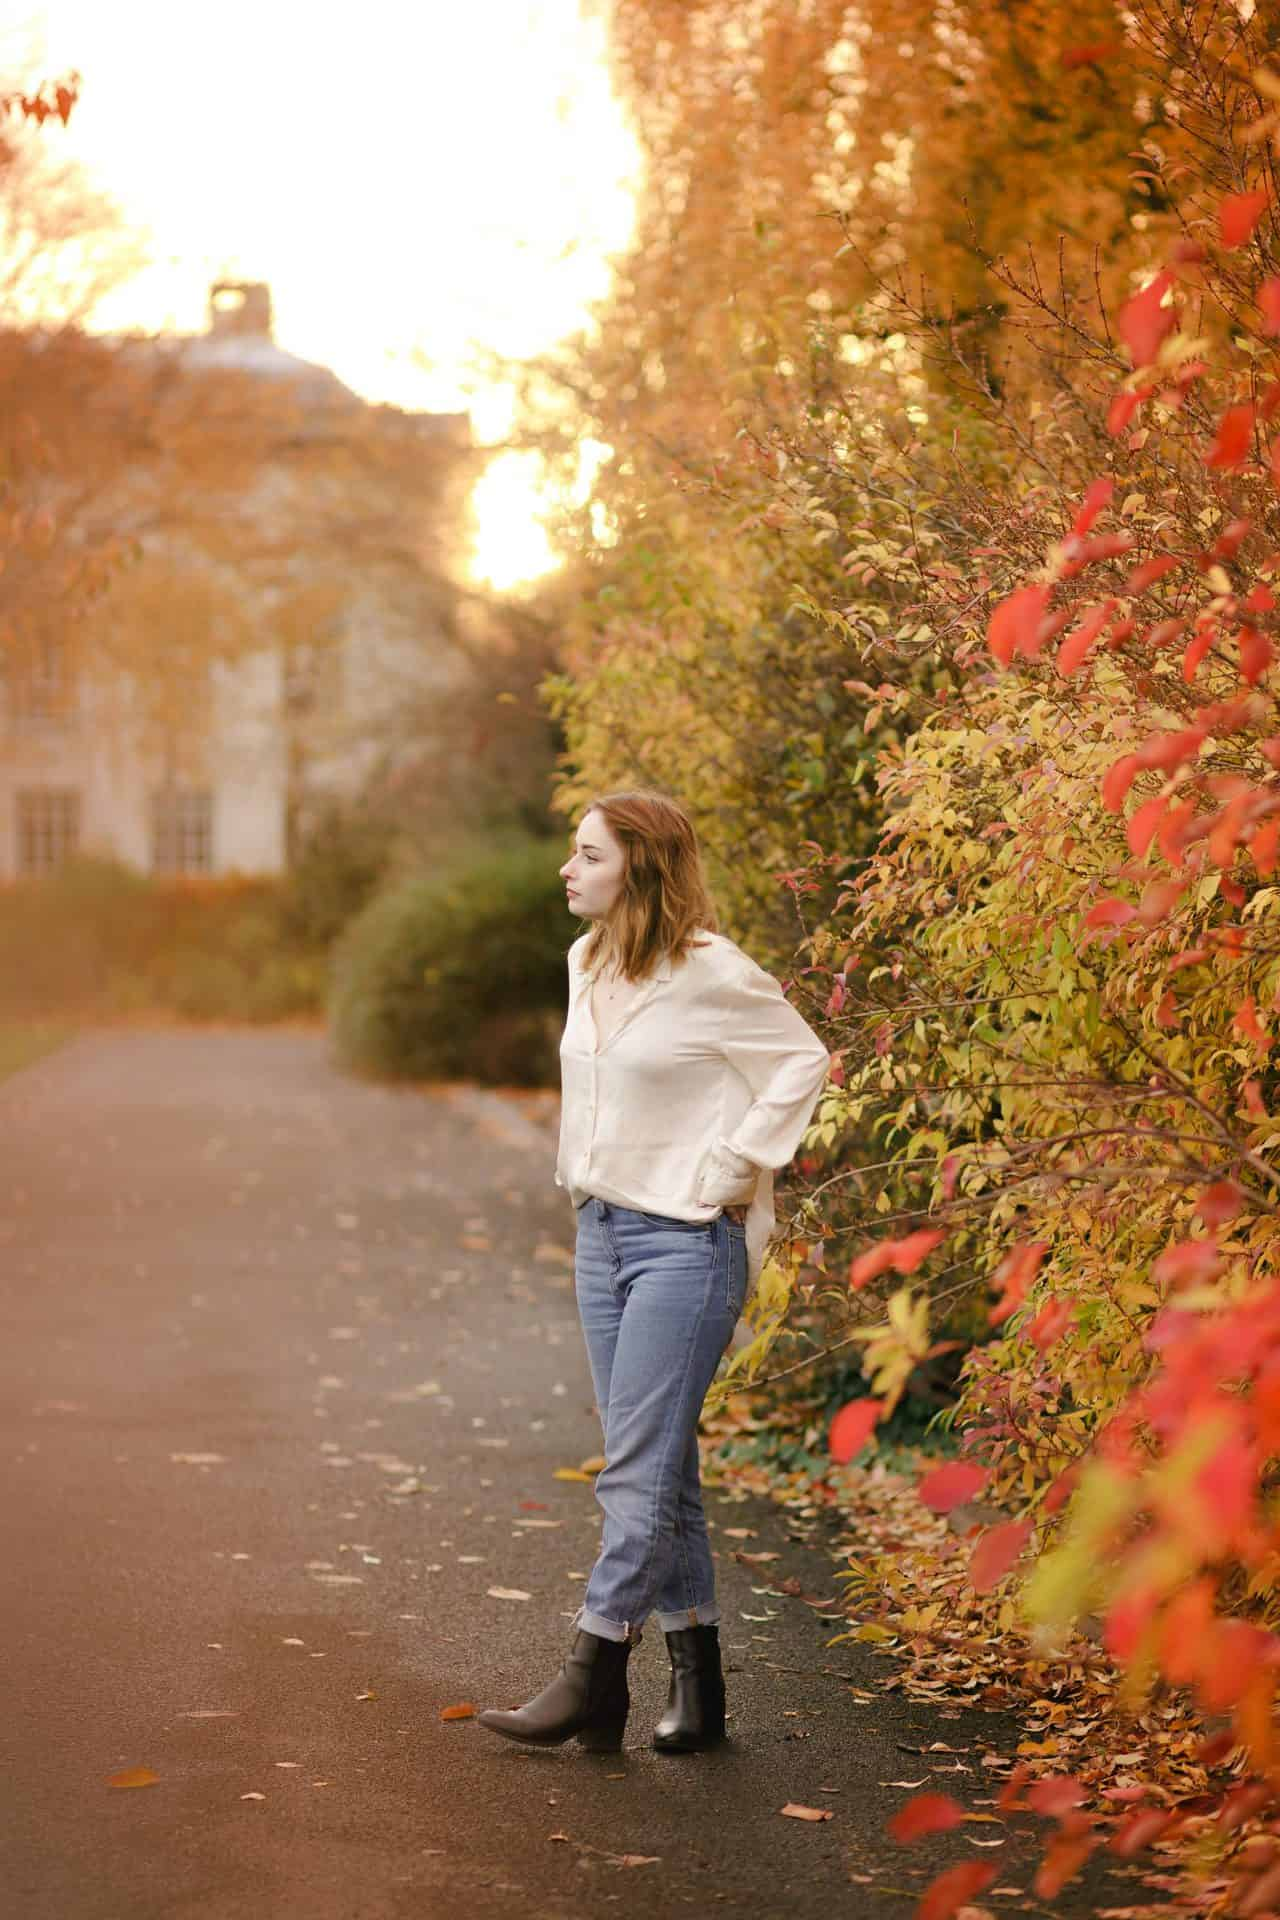 full length outfit photo of a girl wearing a silk shirt standing amongst autumn leaves. how to pose for photos